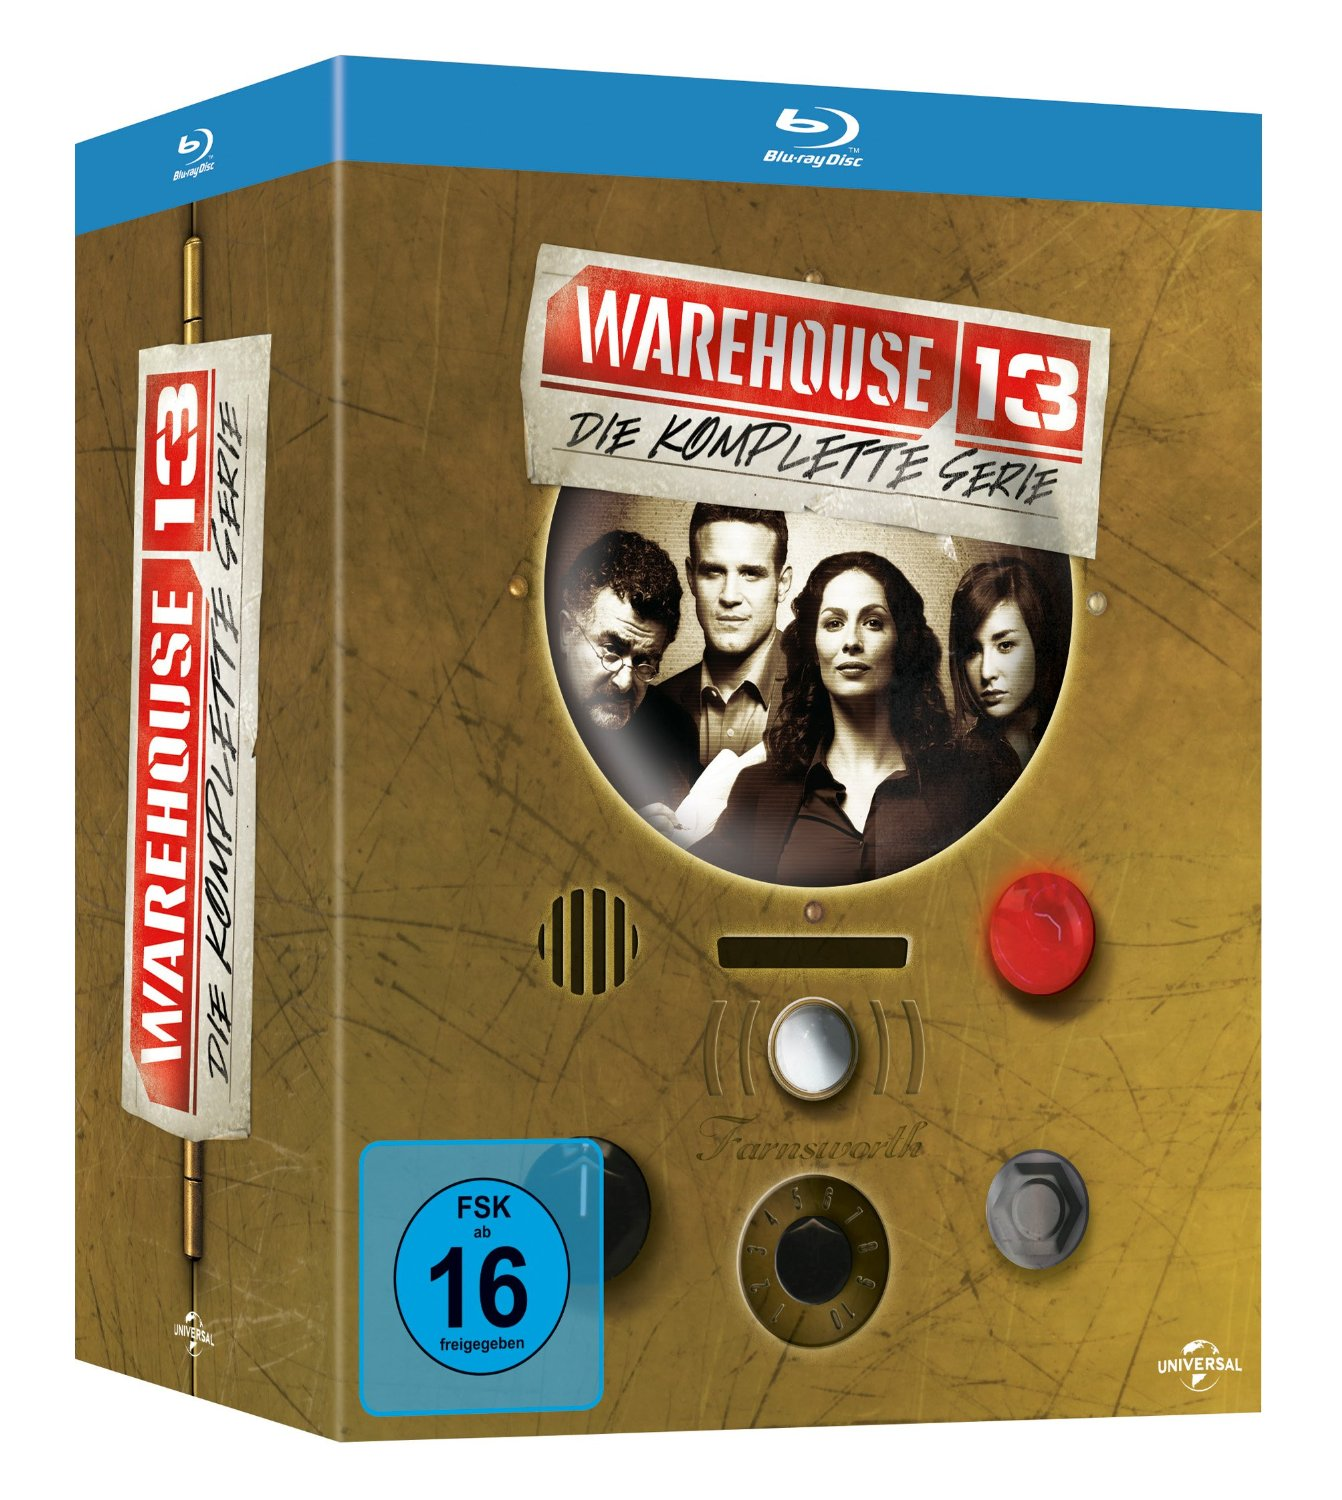 Warehouse 13 - Die komplette Serie (Blu-ray)